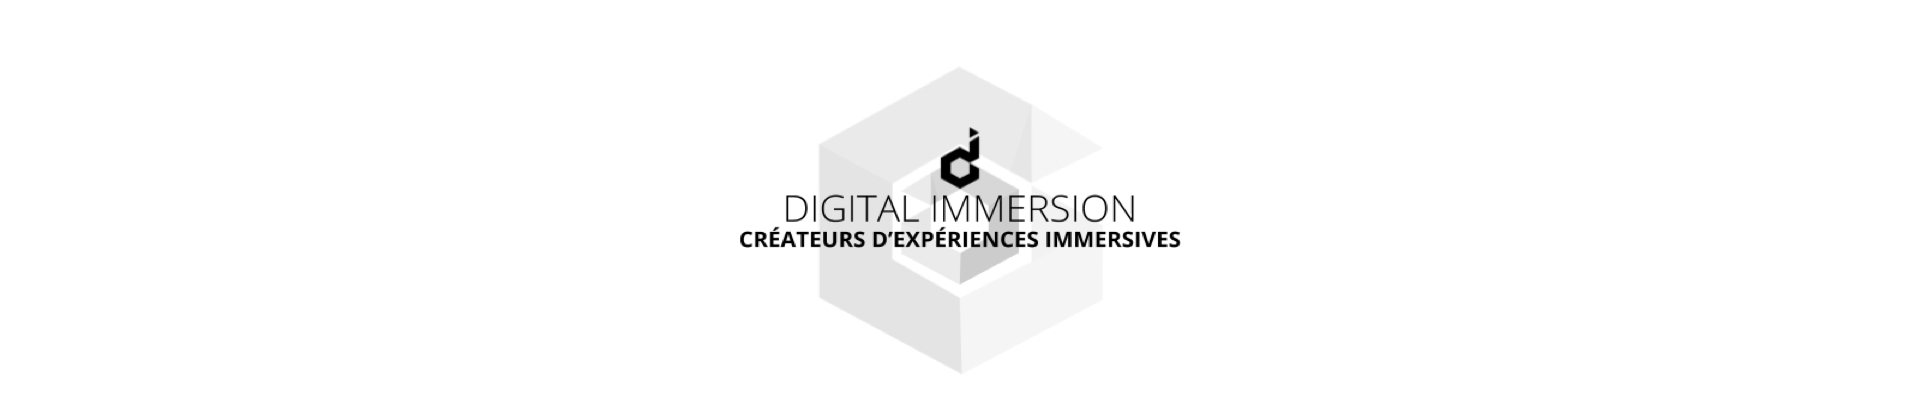 Digital Immersion